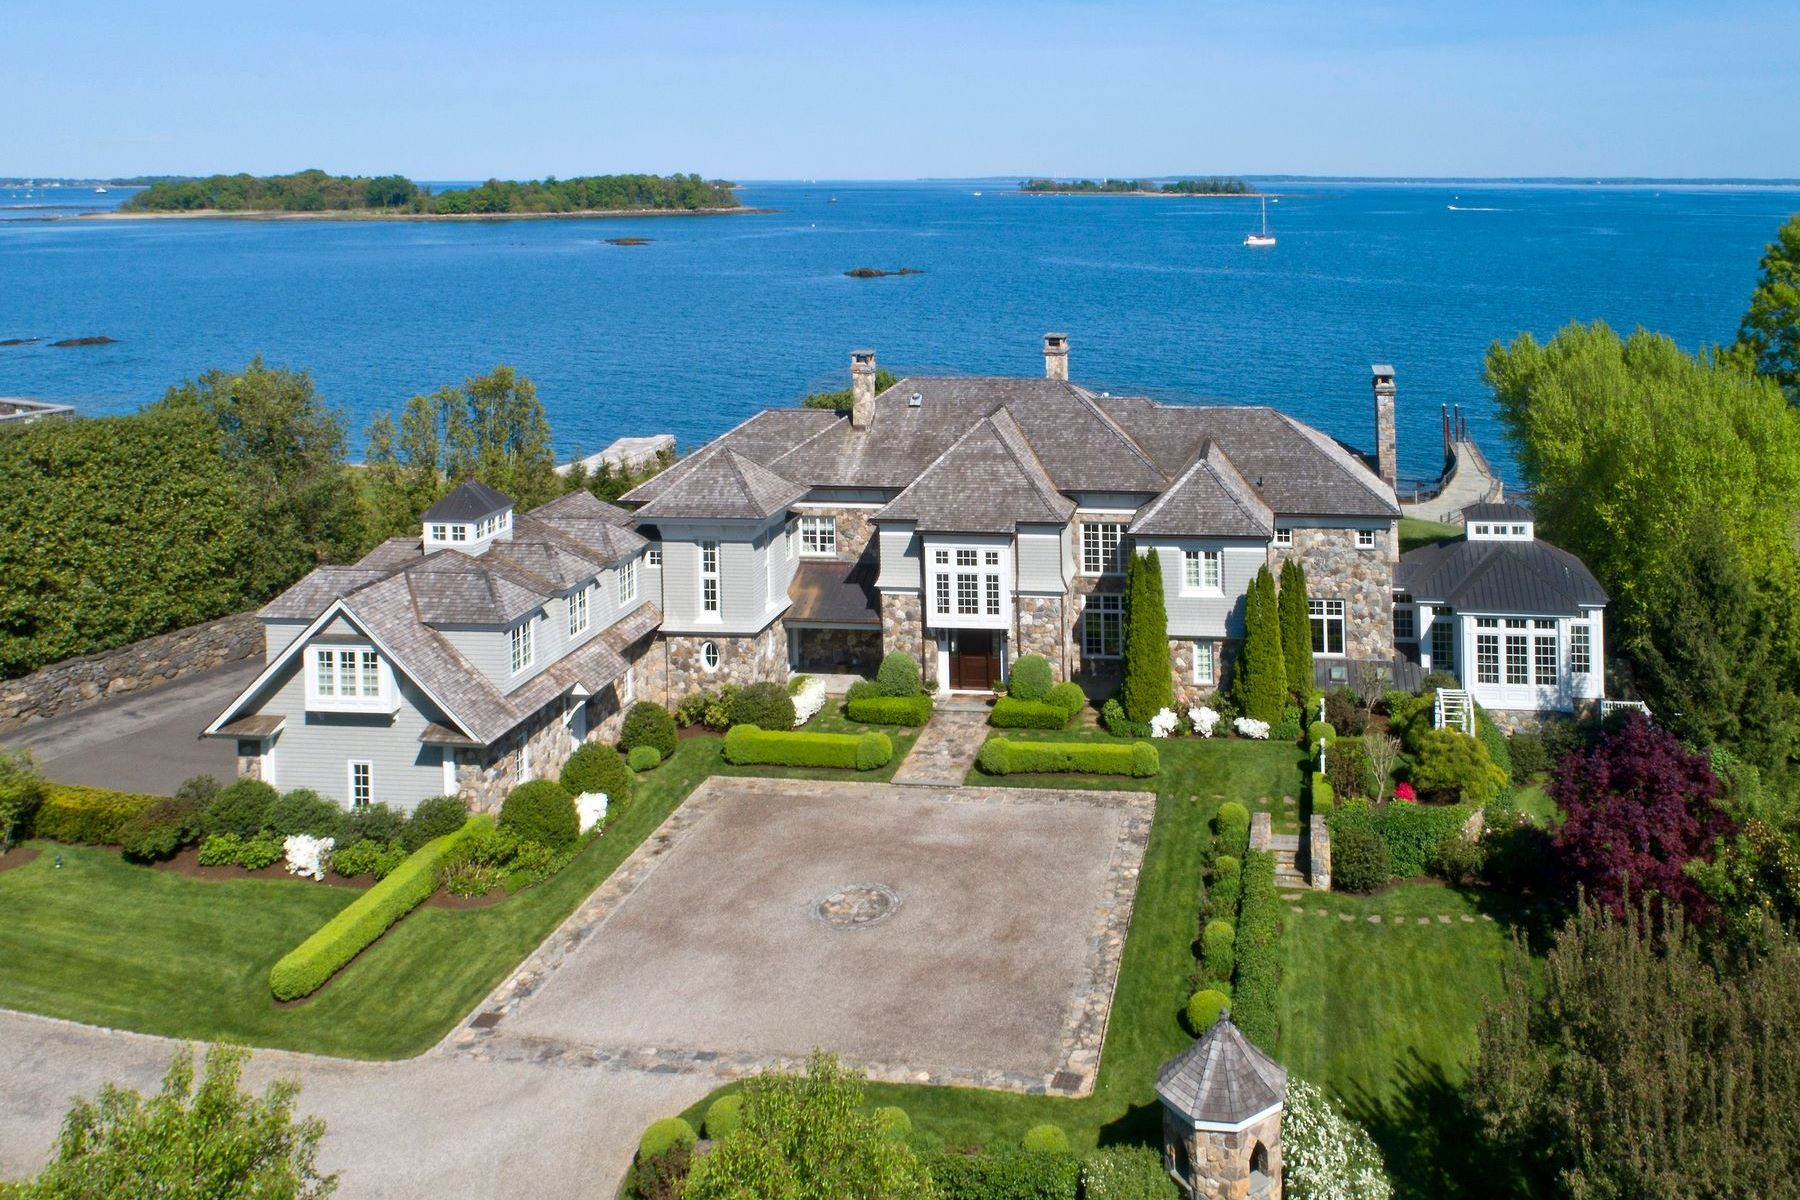 single family homes for Sale at Serenity by the Sea 215 Byram Shore Road, Greenwich, Connecticut 06830 United States